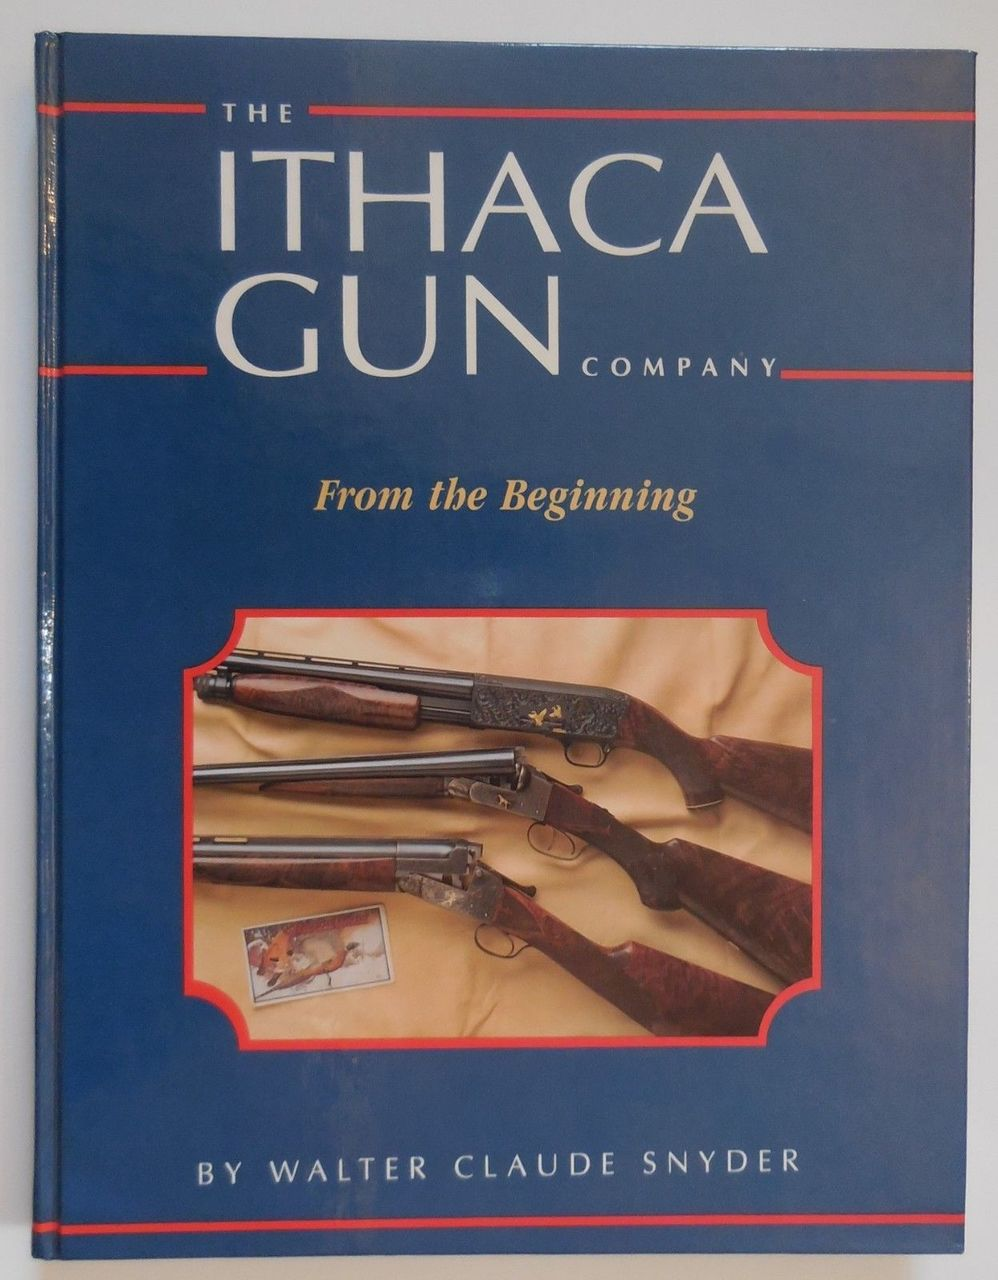 THE ITHACA GUN COMPANY: FROM THE BEGINNING, by Walter Claude Snyder - 1991 [SIGNED]